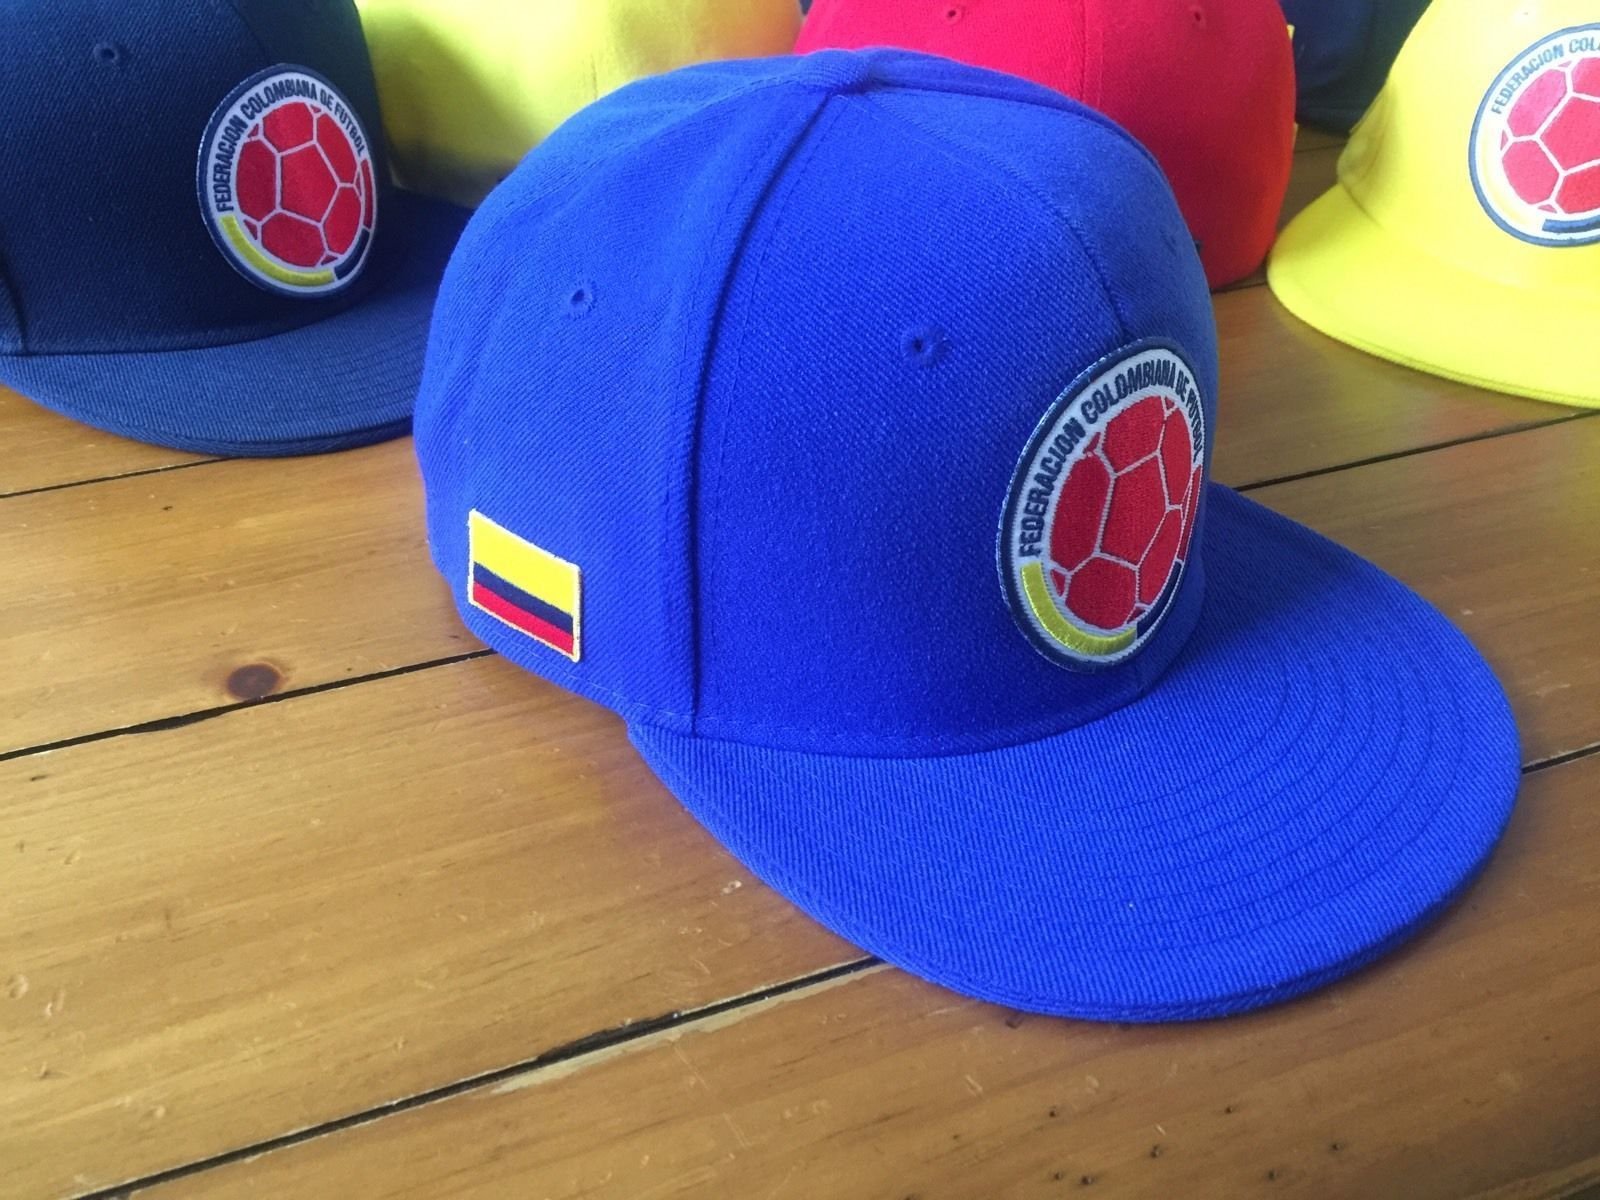 Colombian Product, Colombia, Colombian, Baseball Cap,